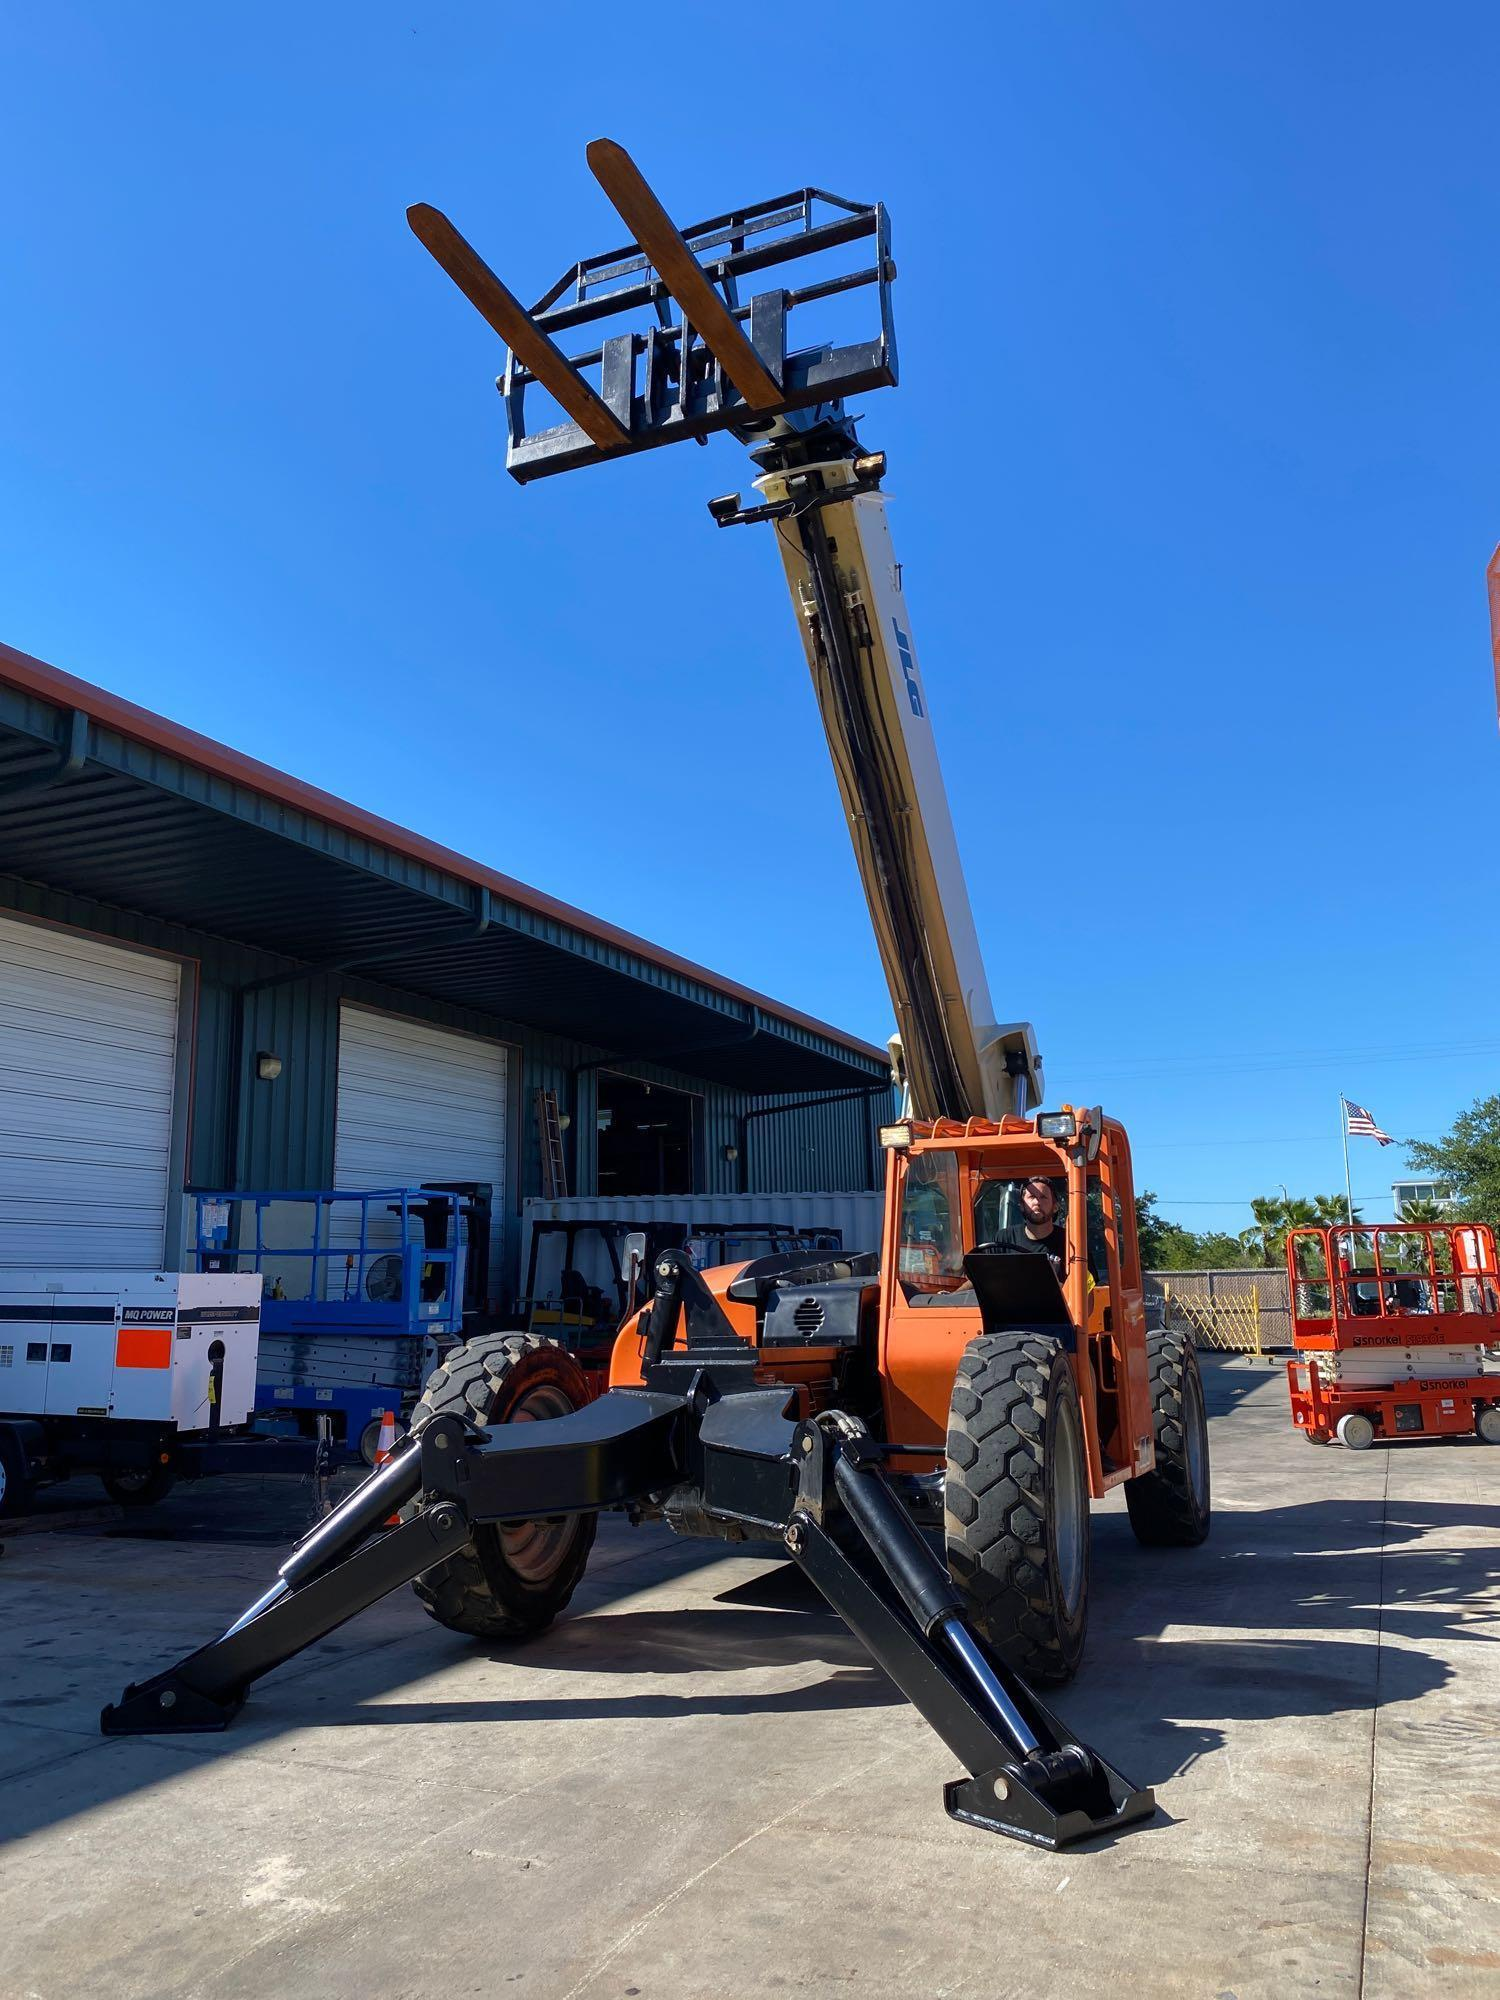 2013 JLG TELESCOPIC FORKLIFT MODEL G10-55A, 10,000 LB CAPACITY, OUTRIGGERS, 5,717.7 HOURS SHOWING, C - Image 6 of 16